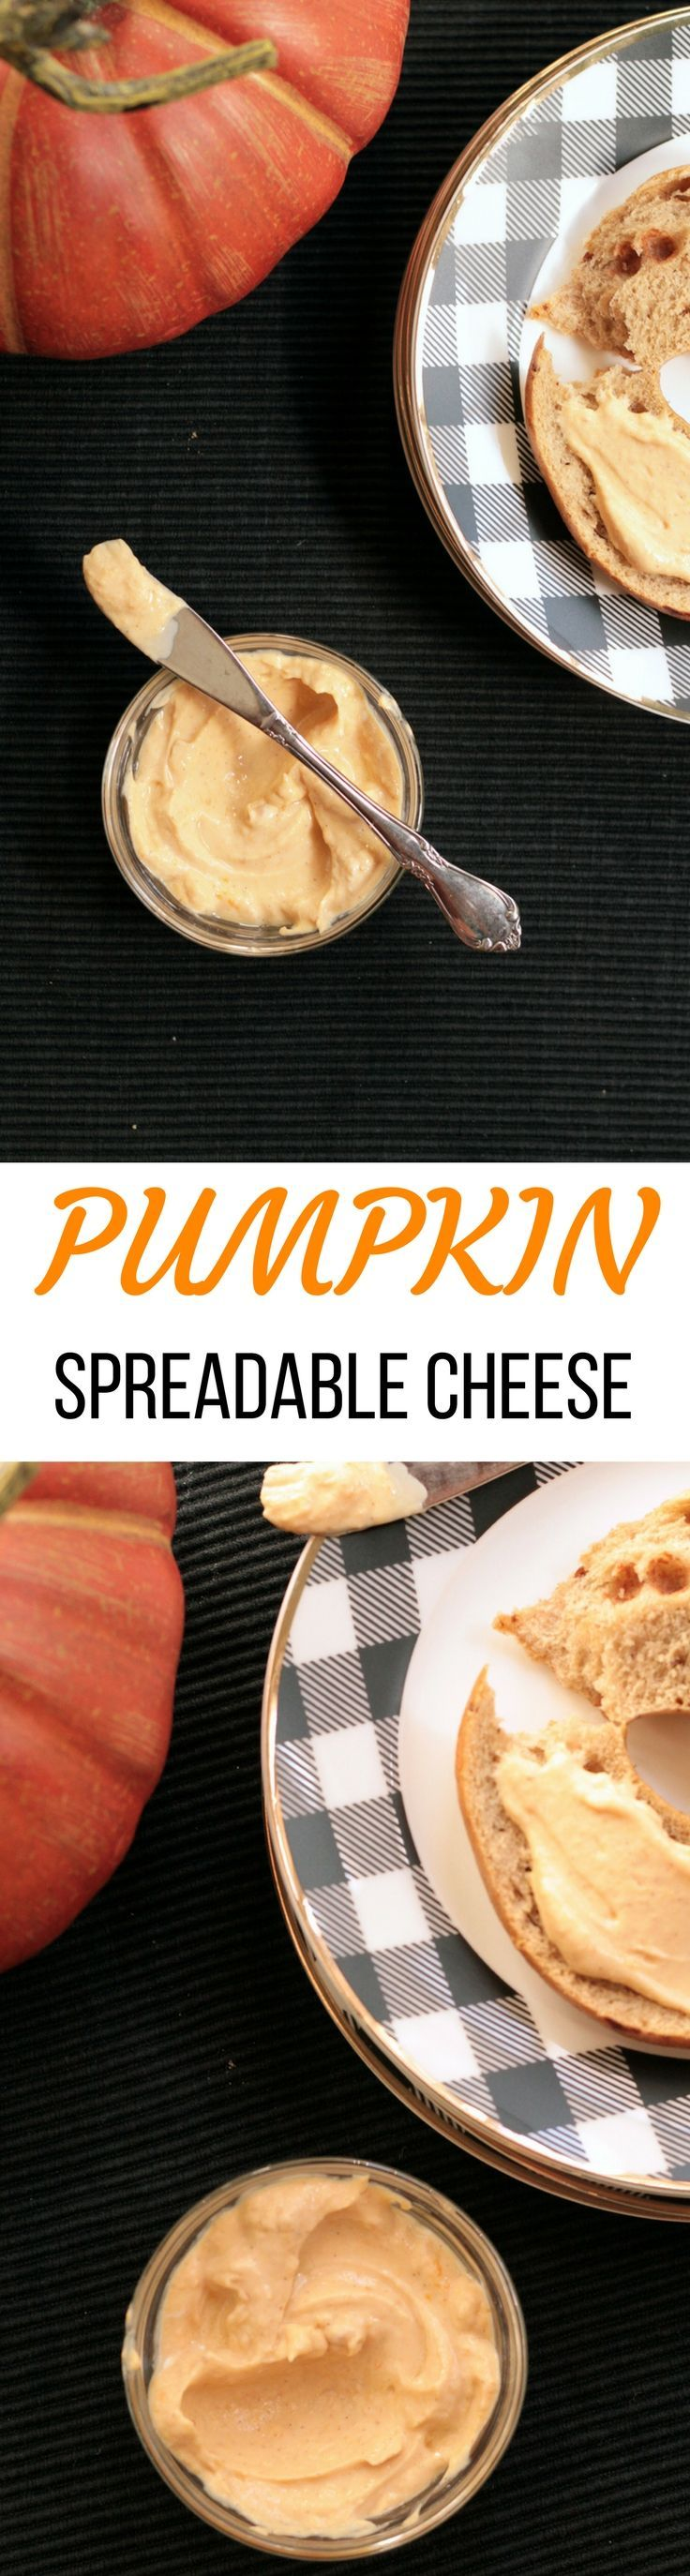 Pumpkin Spreadable Cheese is made with kefir, a probiotic rich food that has benefits for GI health. (scheduled via http://www.tailwindapp.com?utm_source=pinterest&utm_medium=twpin)